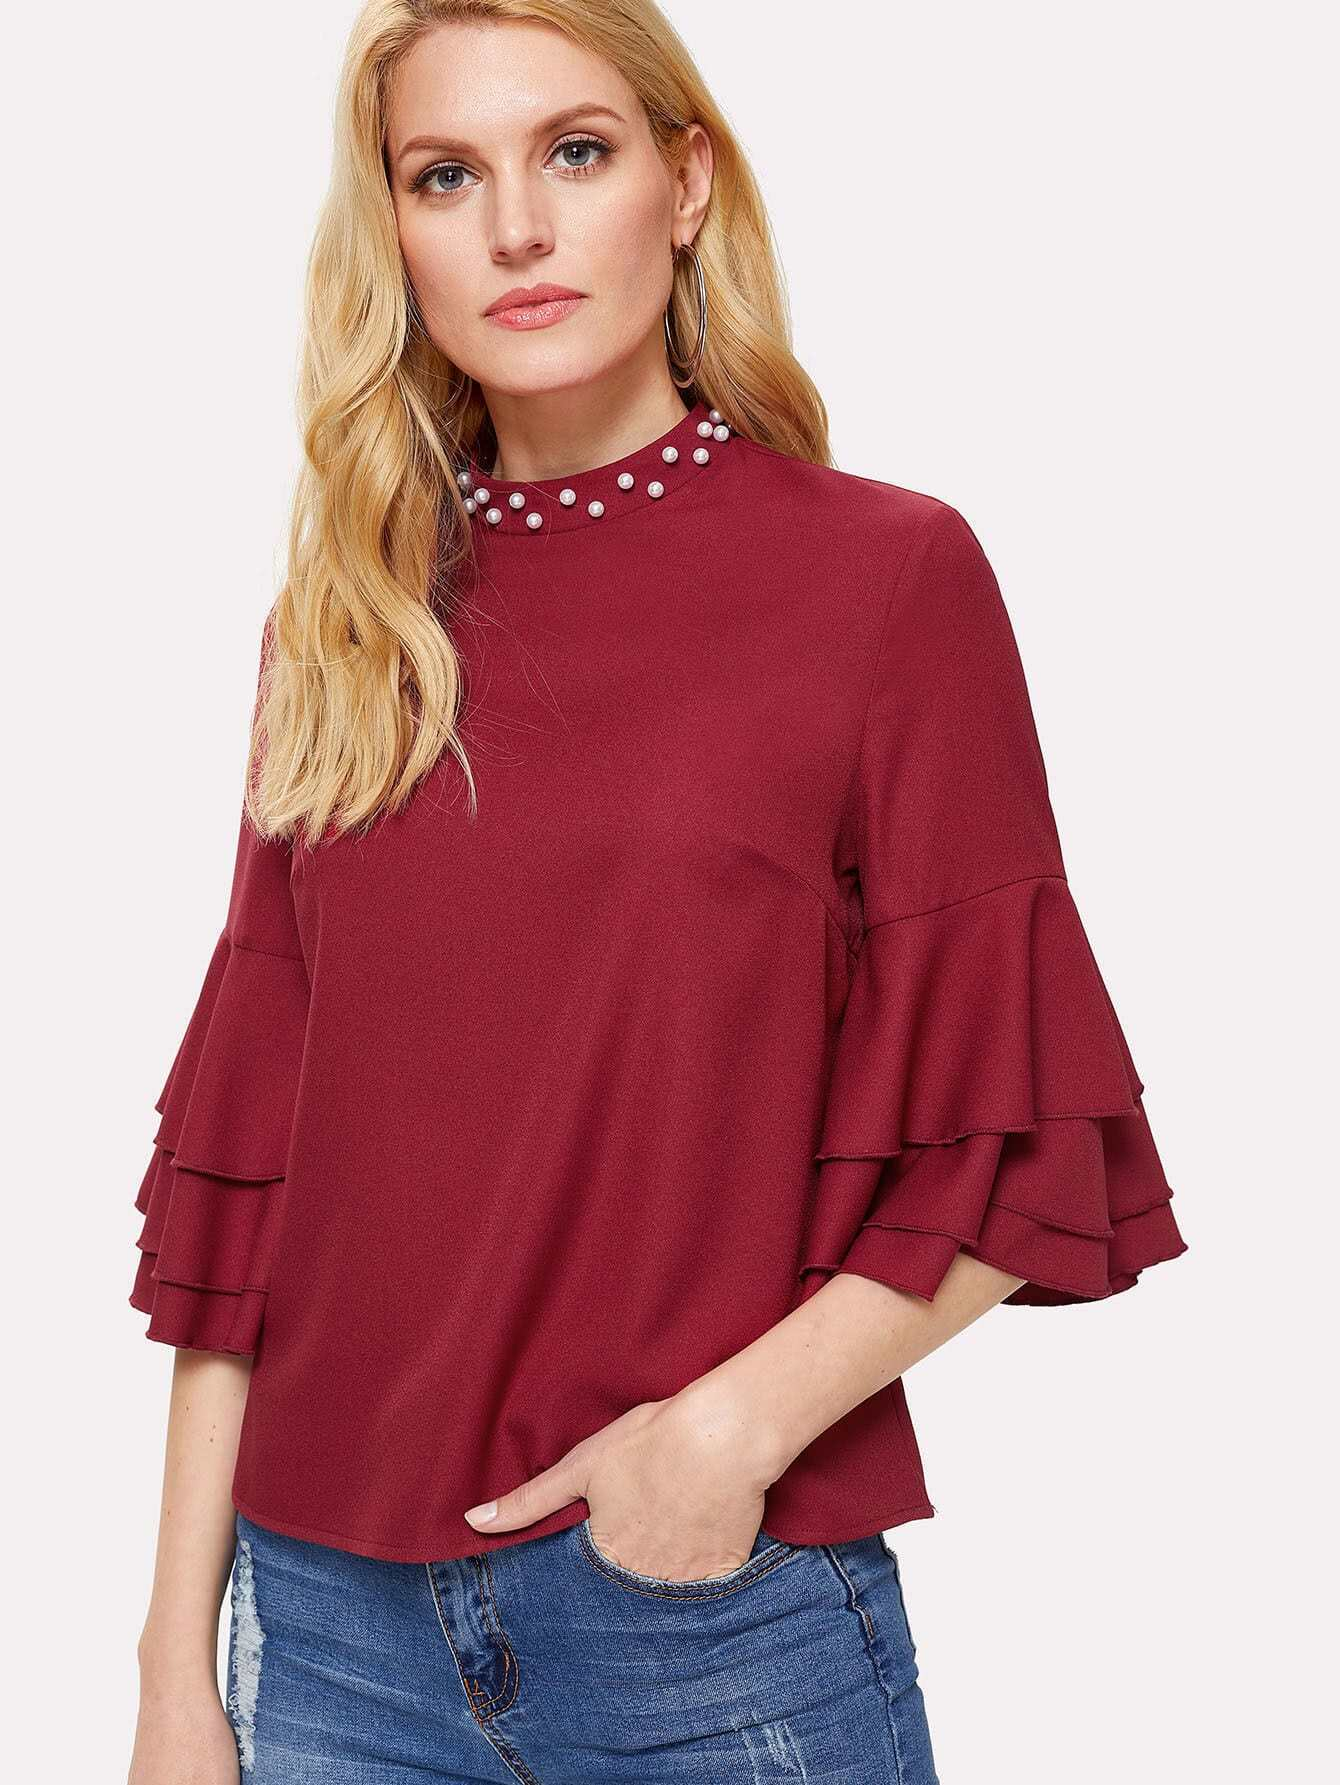 Pearl Detail Layered Flounce Sleeve Top pearl detail layered frill sleeve top